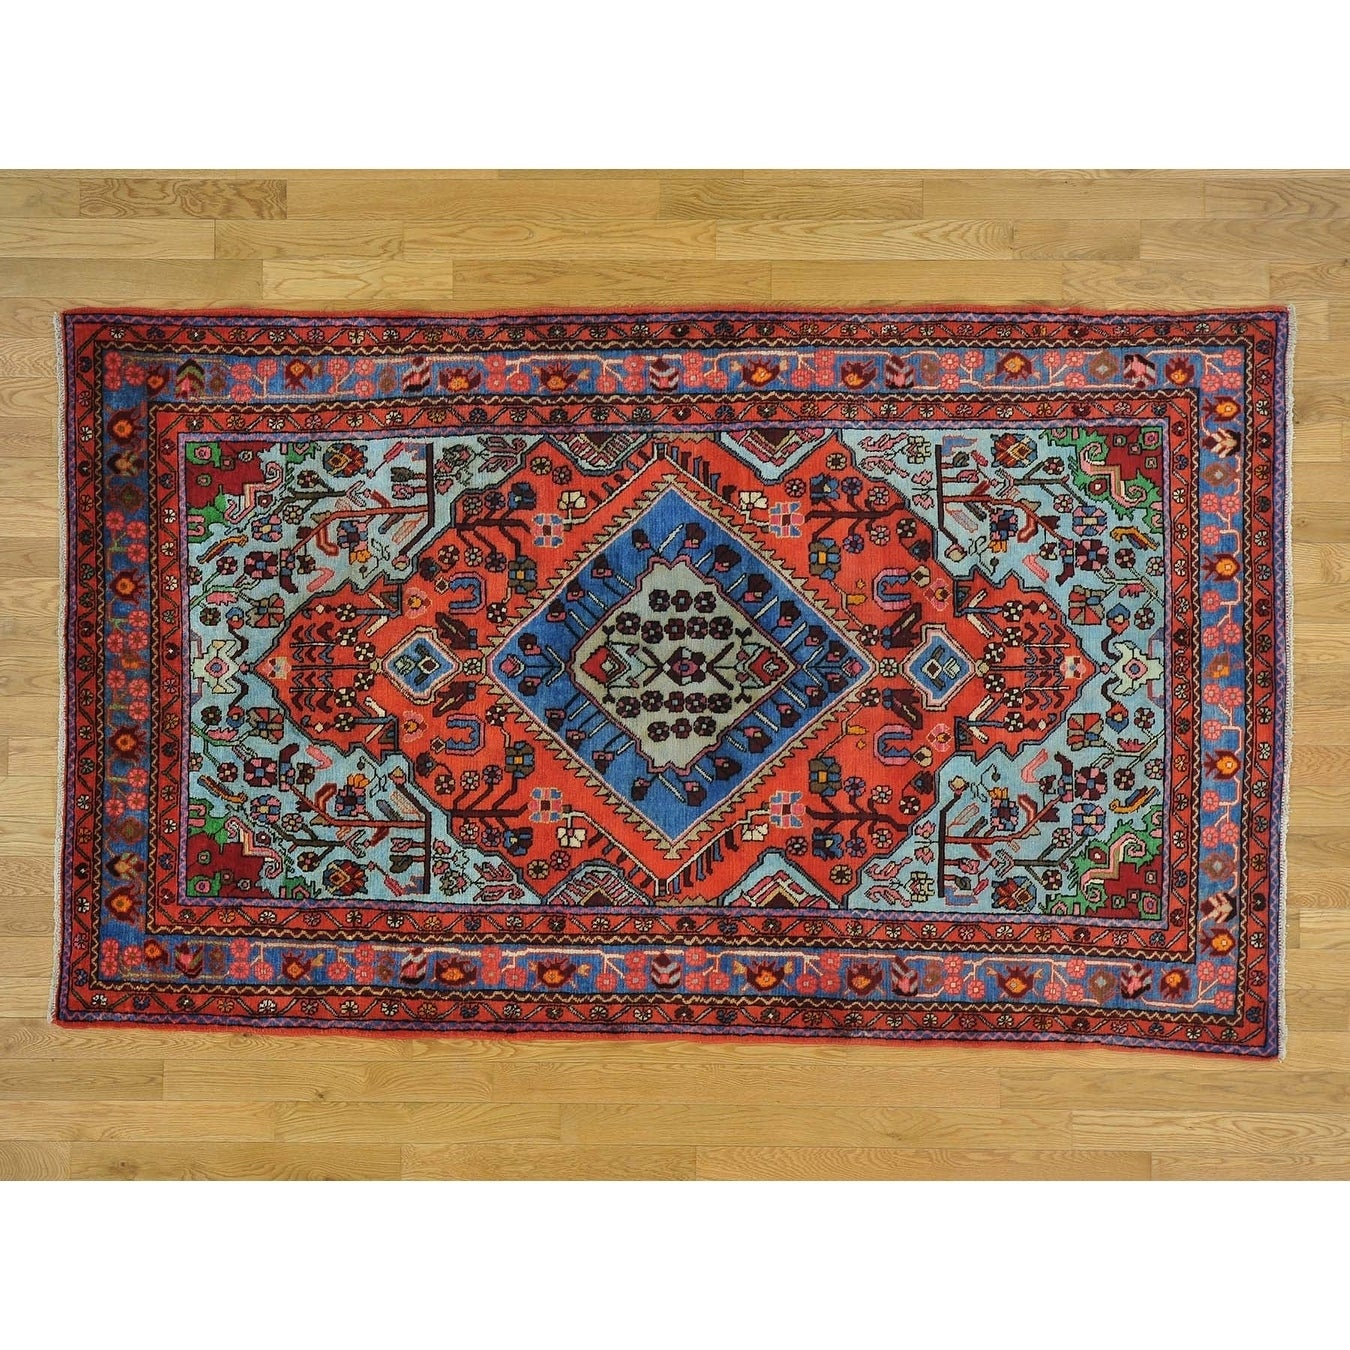 Hand Knotted Red Persian with Wool Oriental Rug - 5' x 8'3